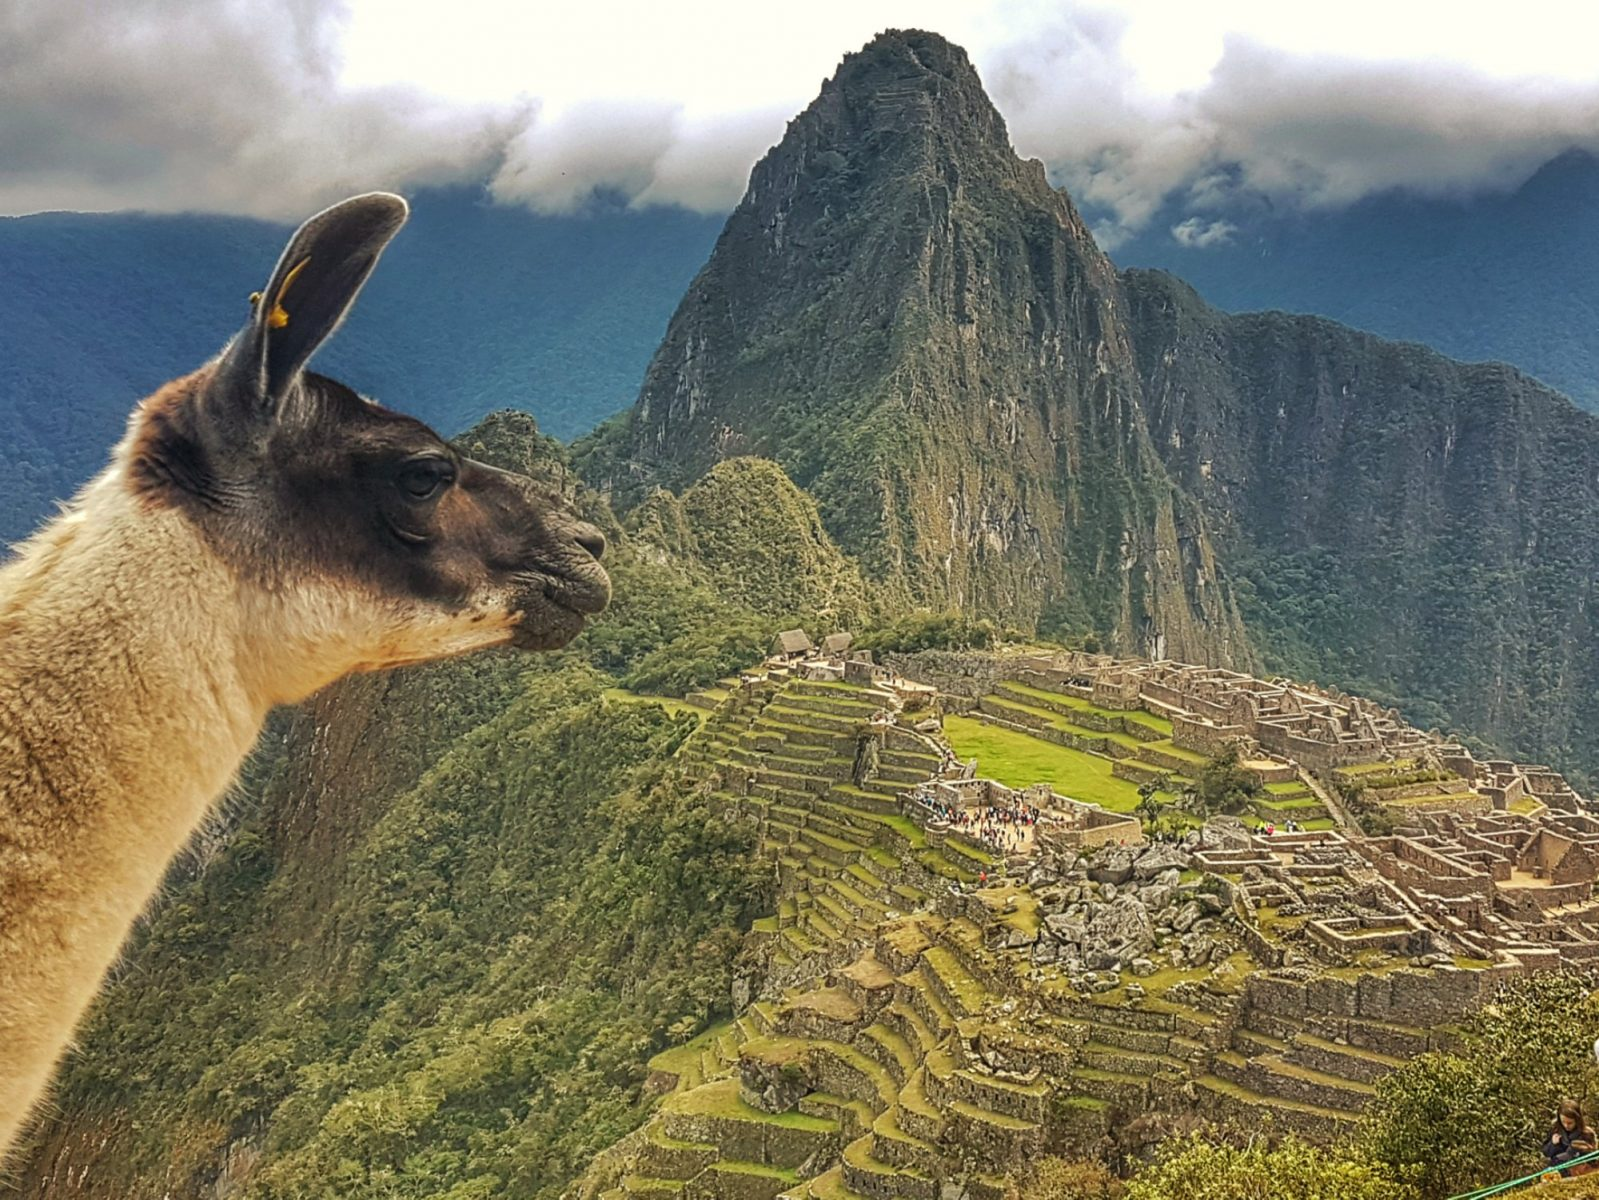 "<img src=""images/"" width=""800"" height=""600"" alt=""[object object] - wp image 1726154240 - Peru: Our DIY Hike To Machu Picchu"">"